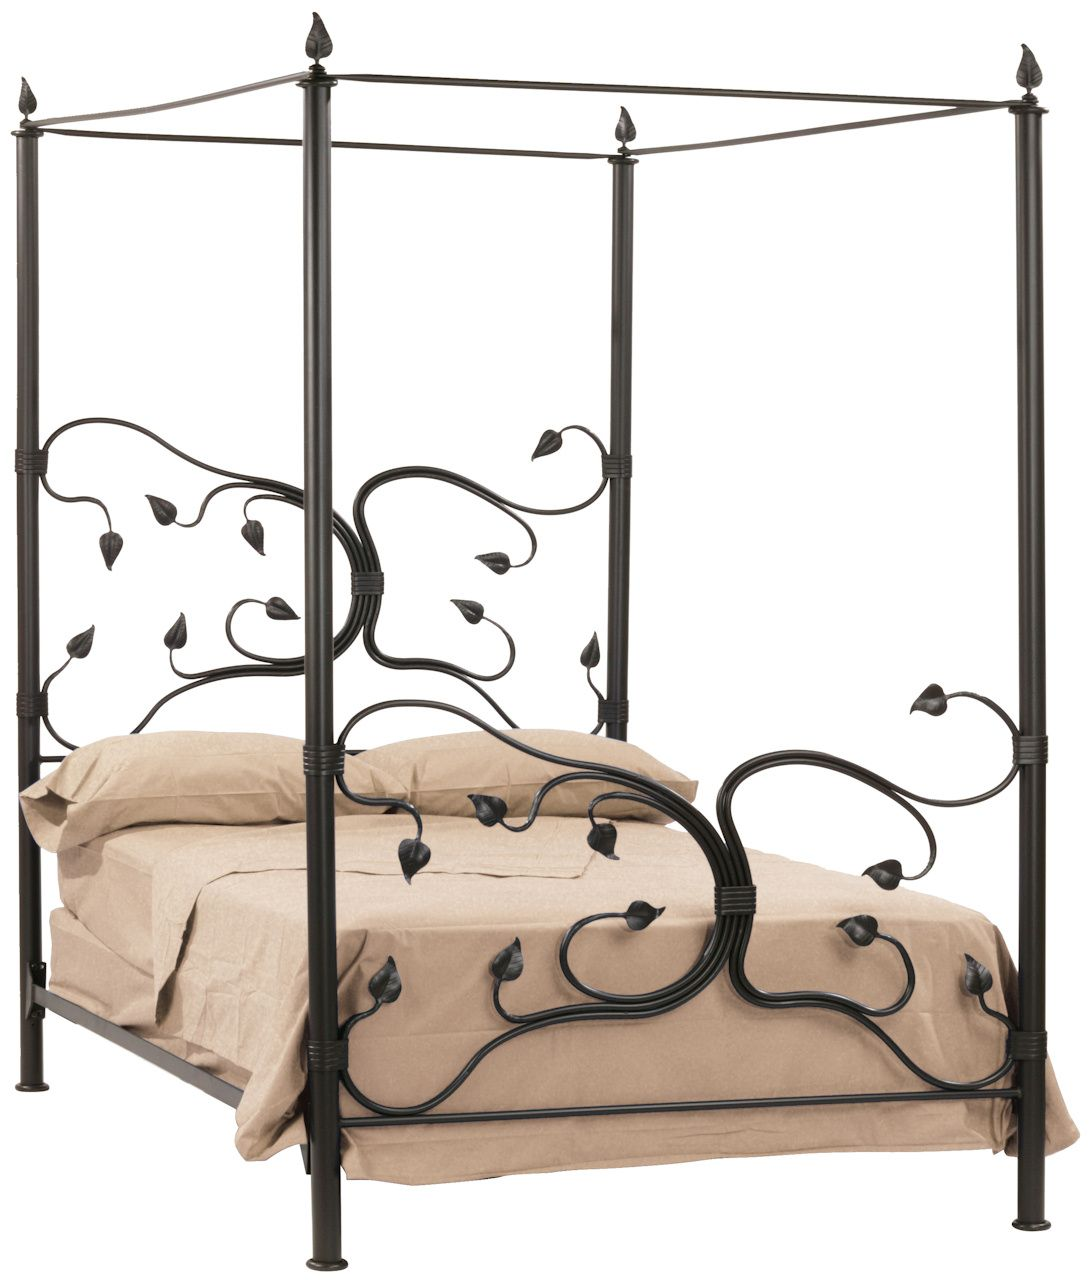 Diy Canopy Bed Wood Google Search Canopy Bed Frame Iron Canopy Bed Iron Bed Frame